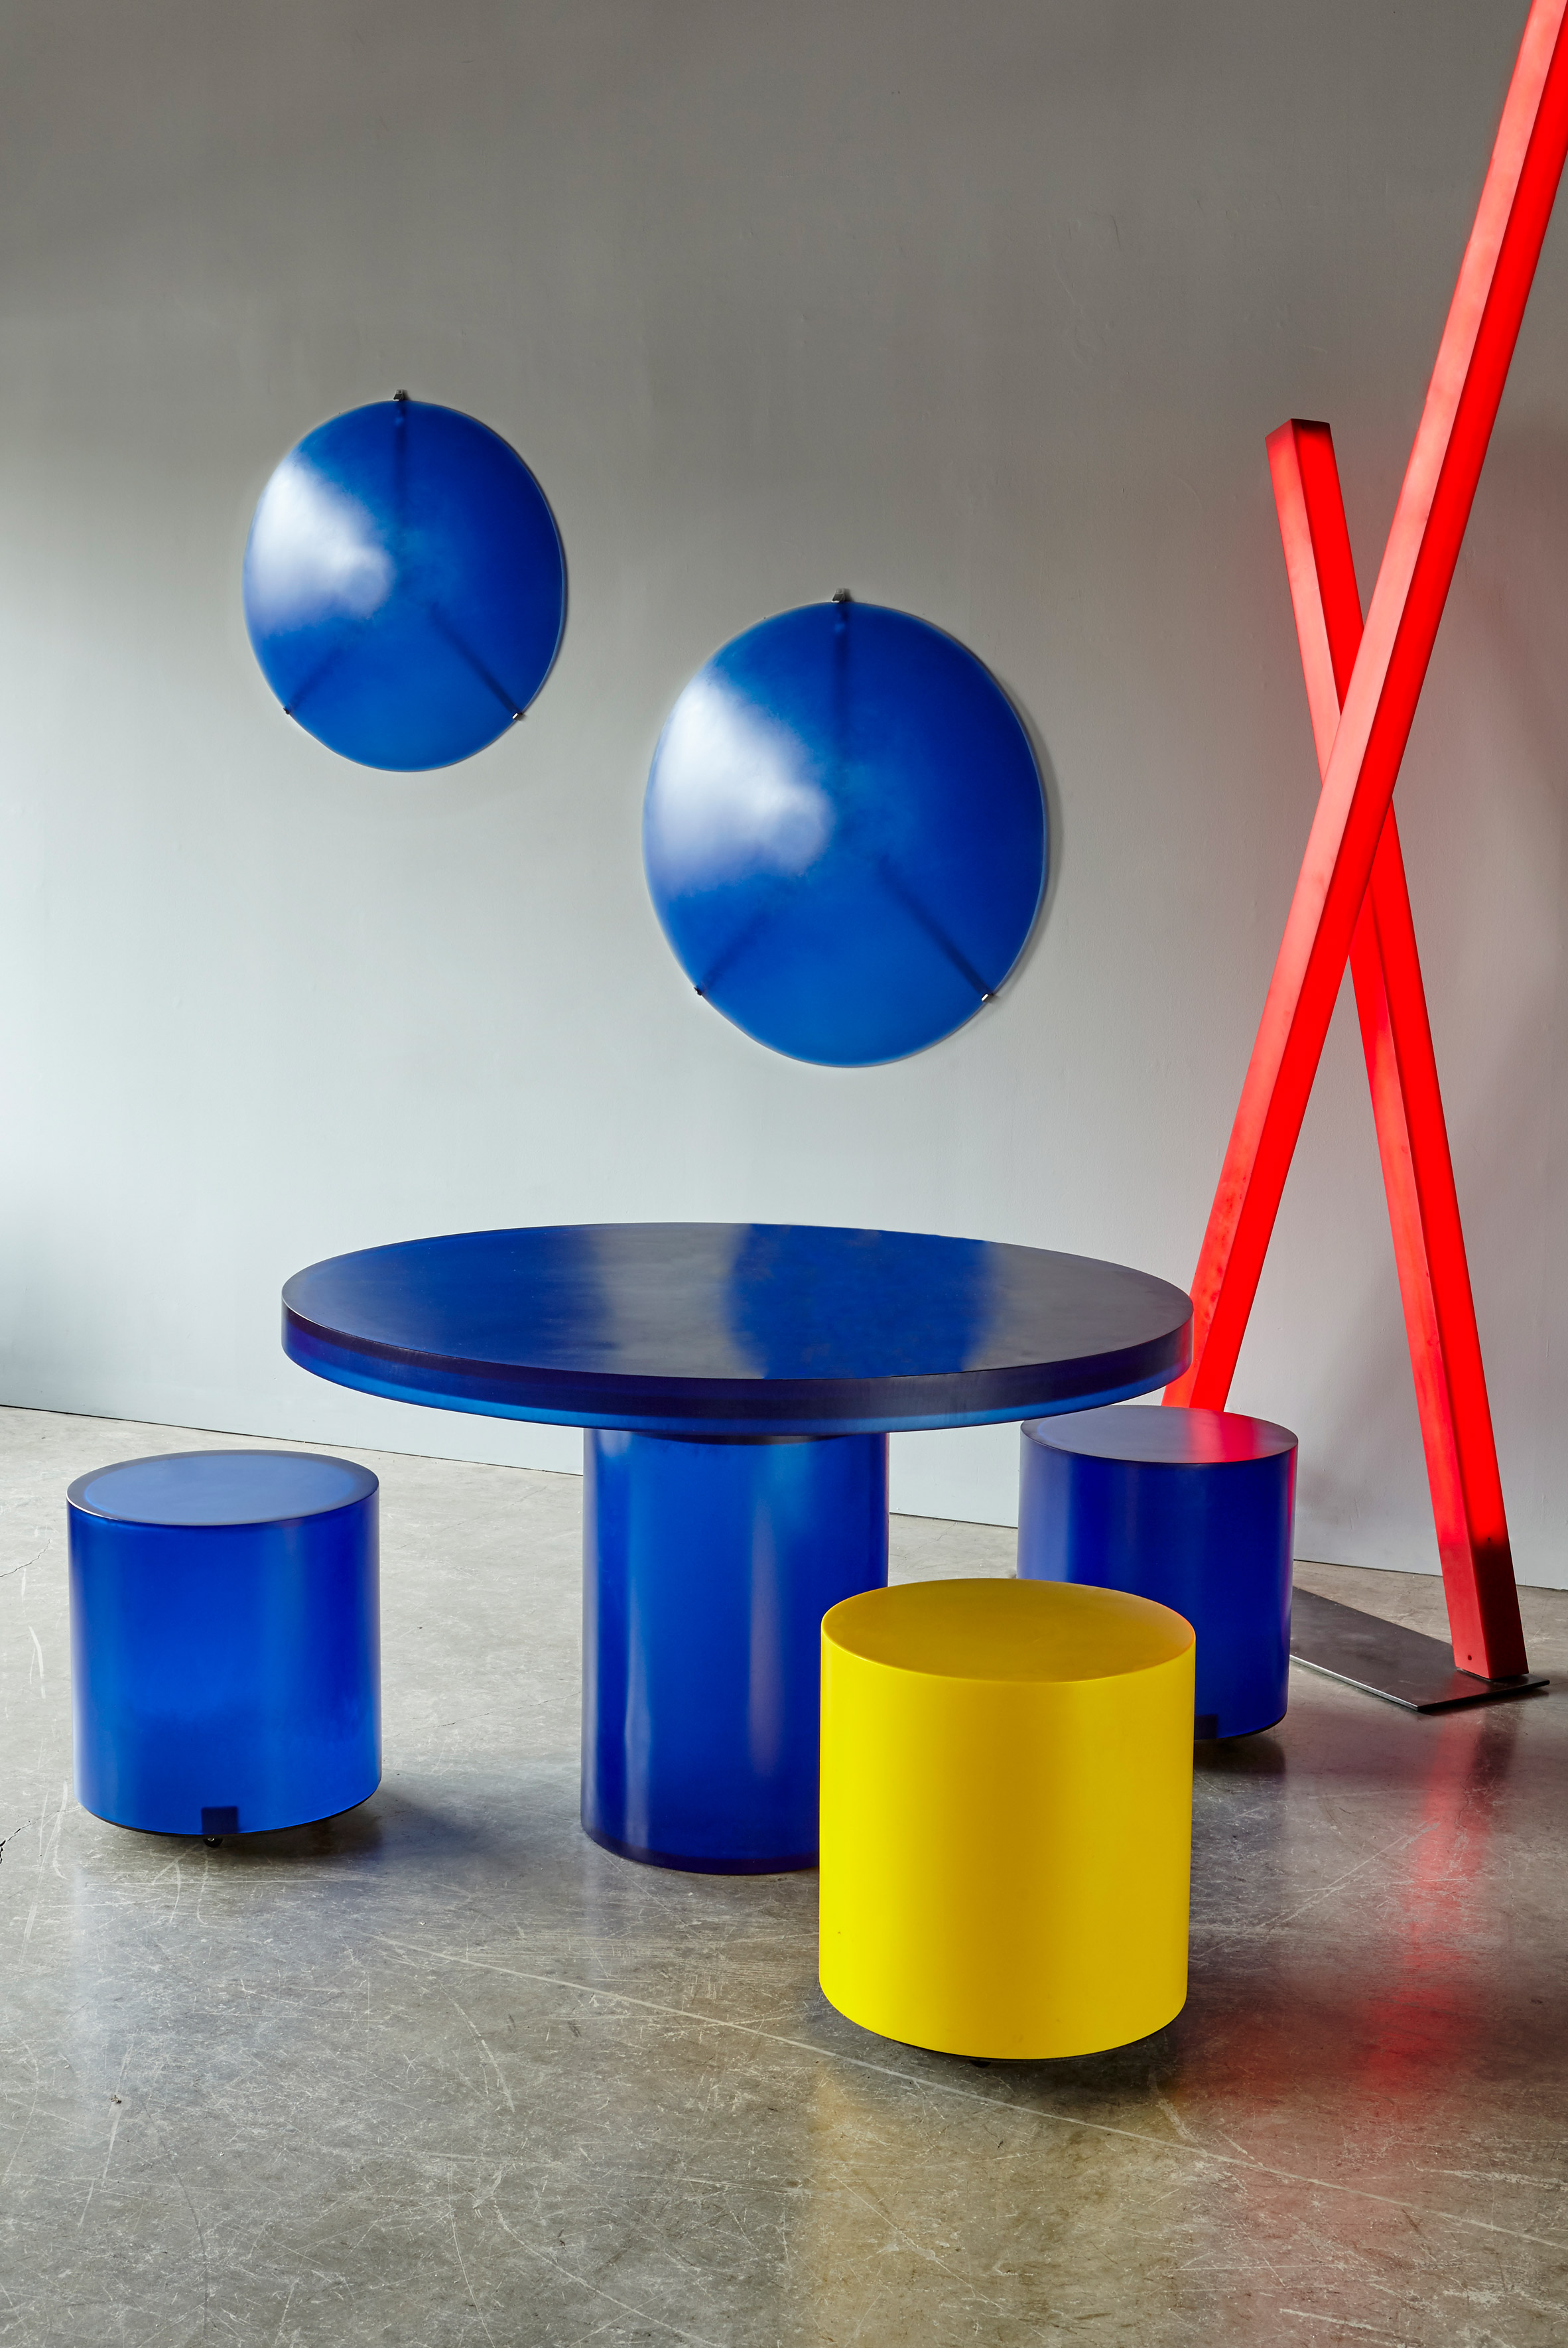 Martha Sturdy uses resin to create bold, blocky furniture